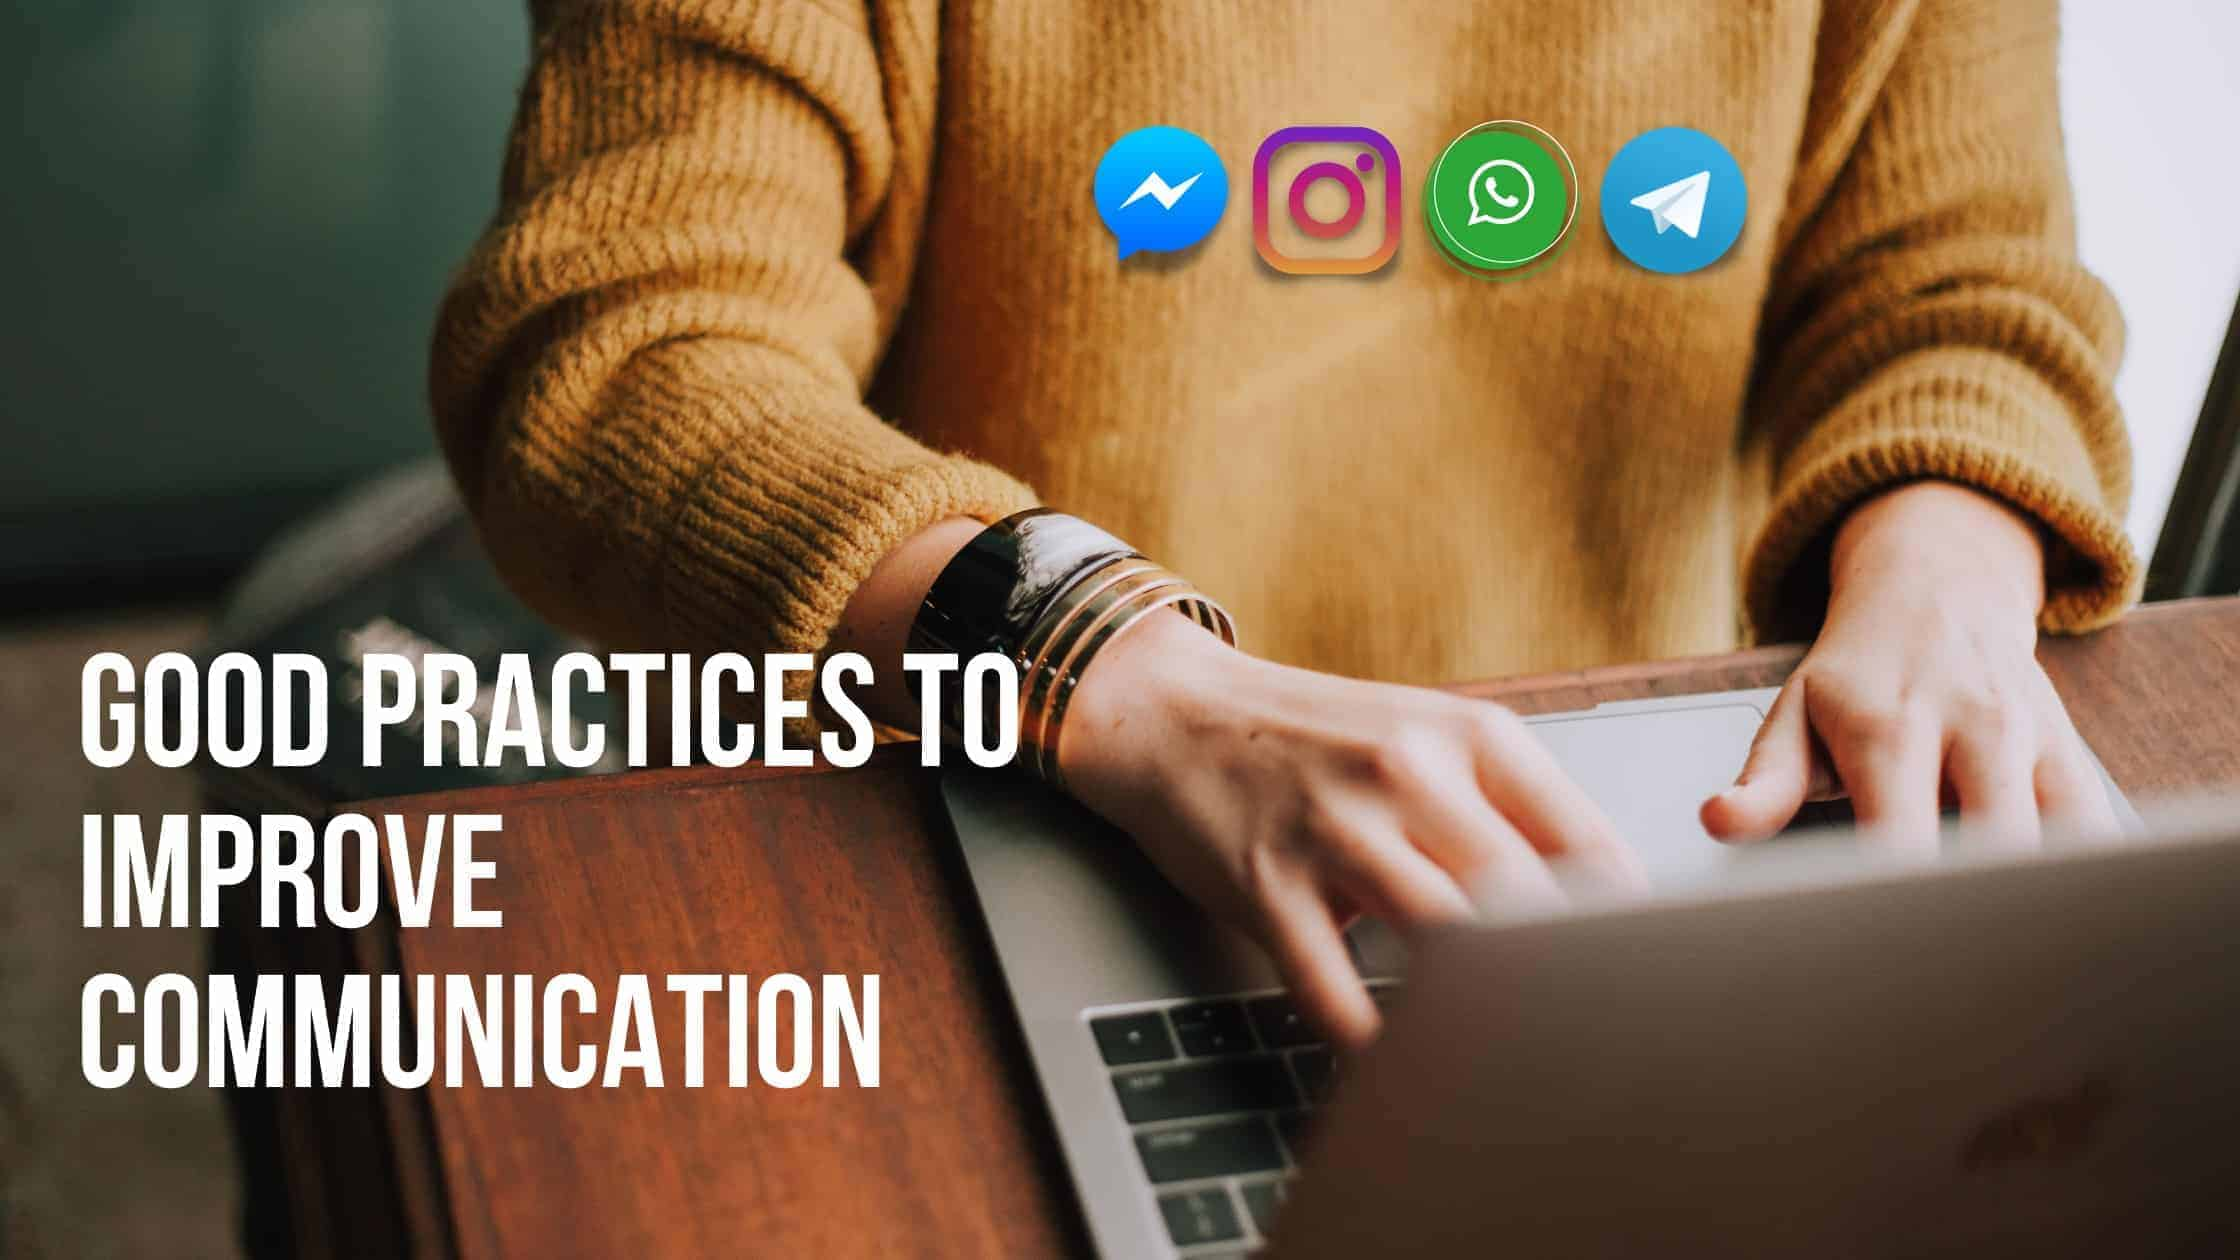 Best practices to improve communication